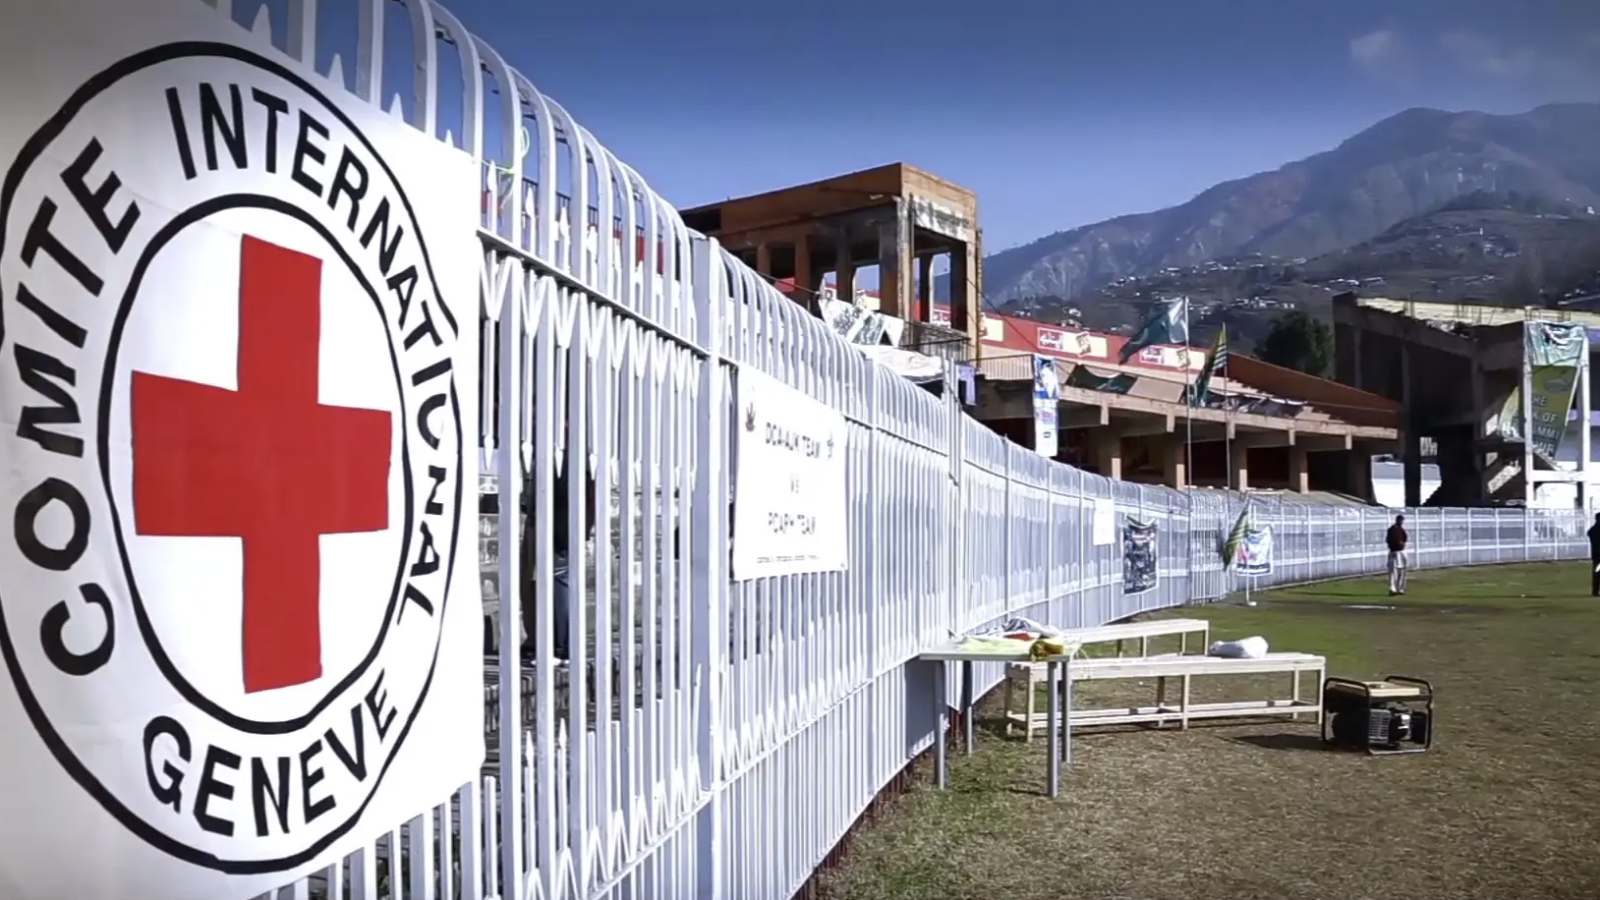 The International Committee of the Red Cross logo on a white fence.